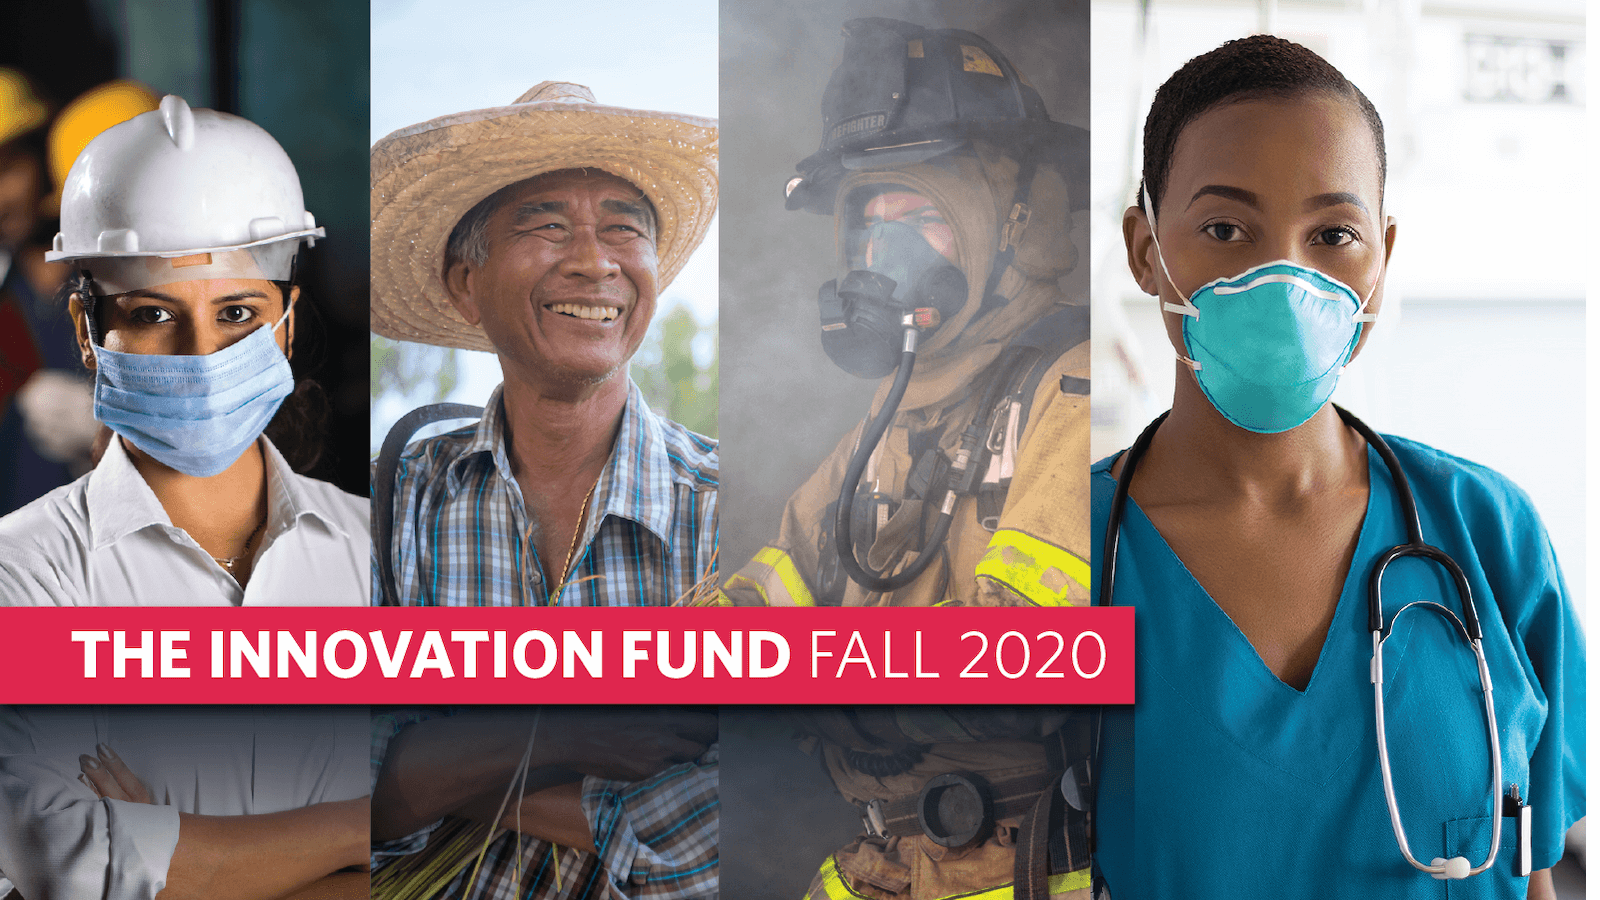 innovation-fund-fall-2020-feature-nologo-title-only-1600x900